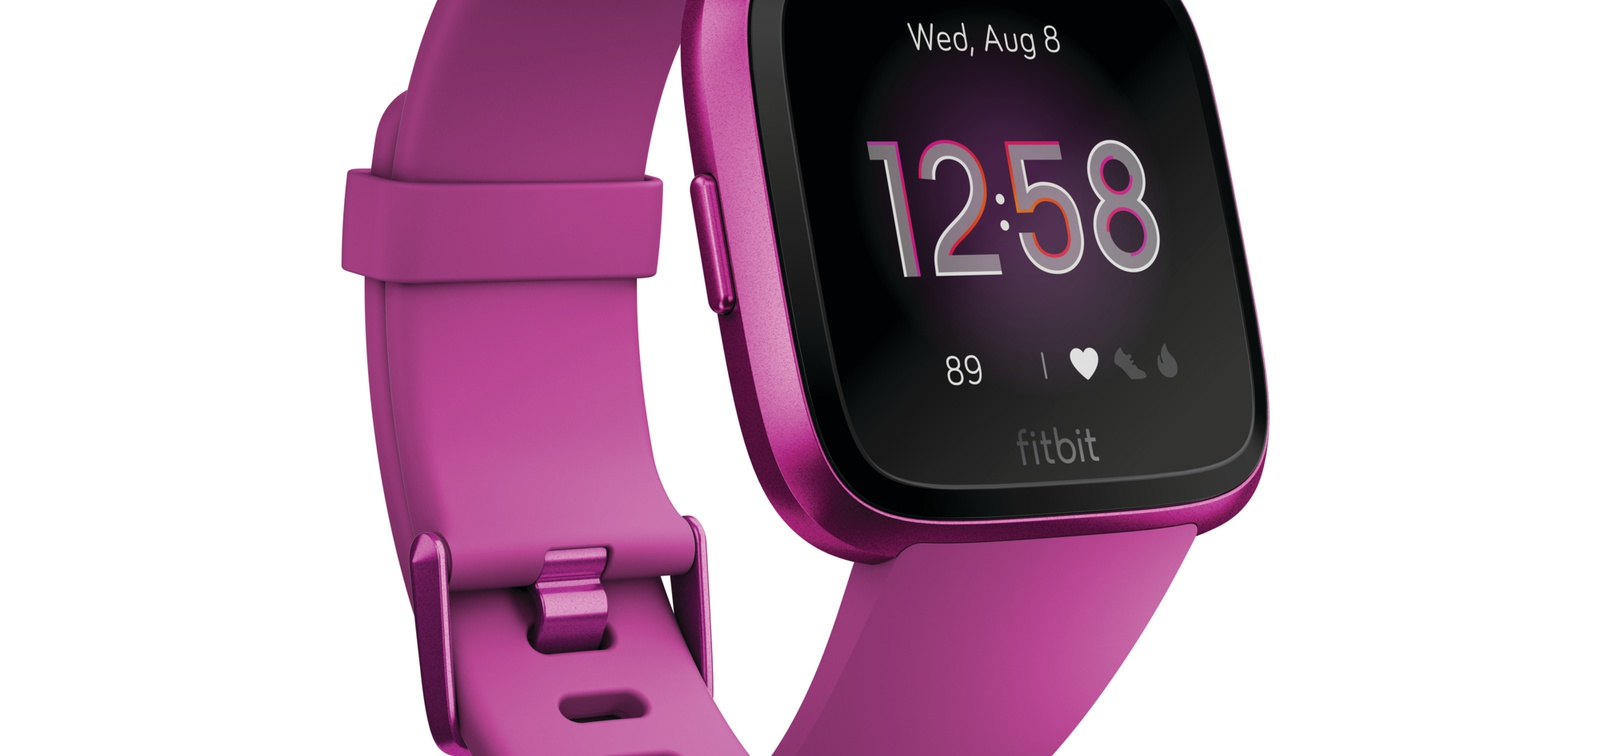 Fitbit data suggest potential for early COVID-19 detection using wearables